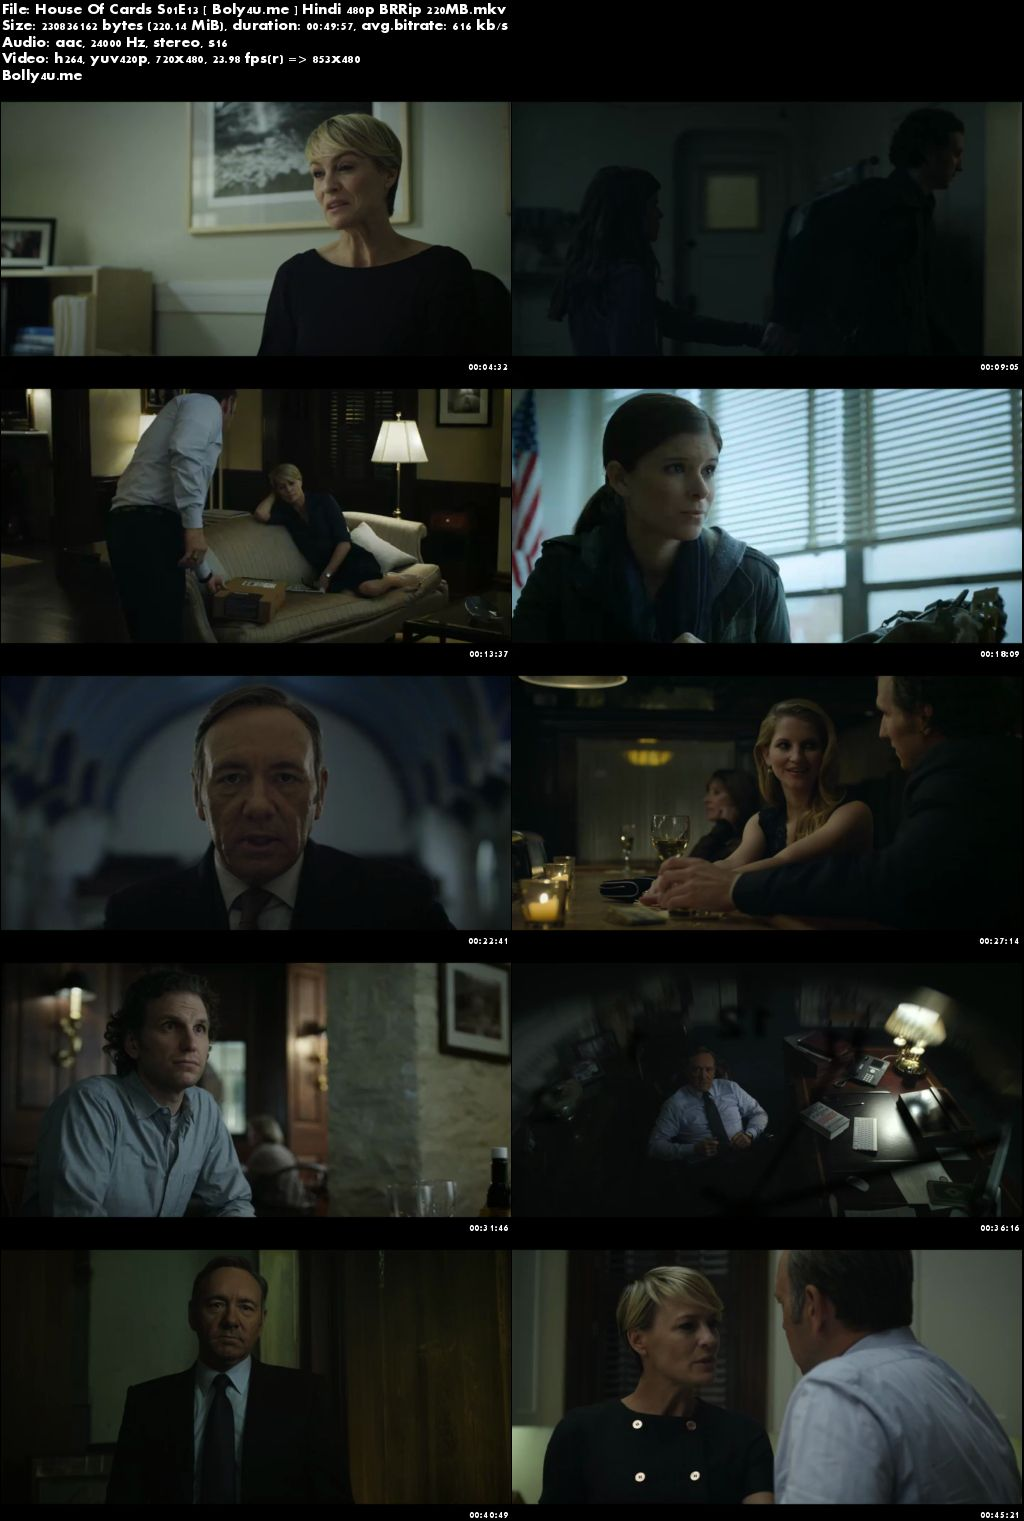 House Of Cards S01E13 BRRip 200MB Hindi Dubbed 480p Download